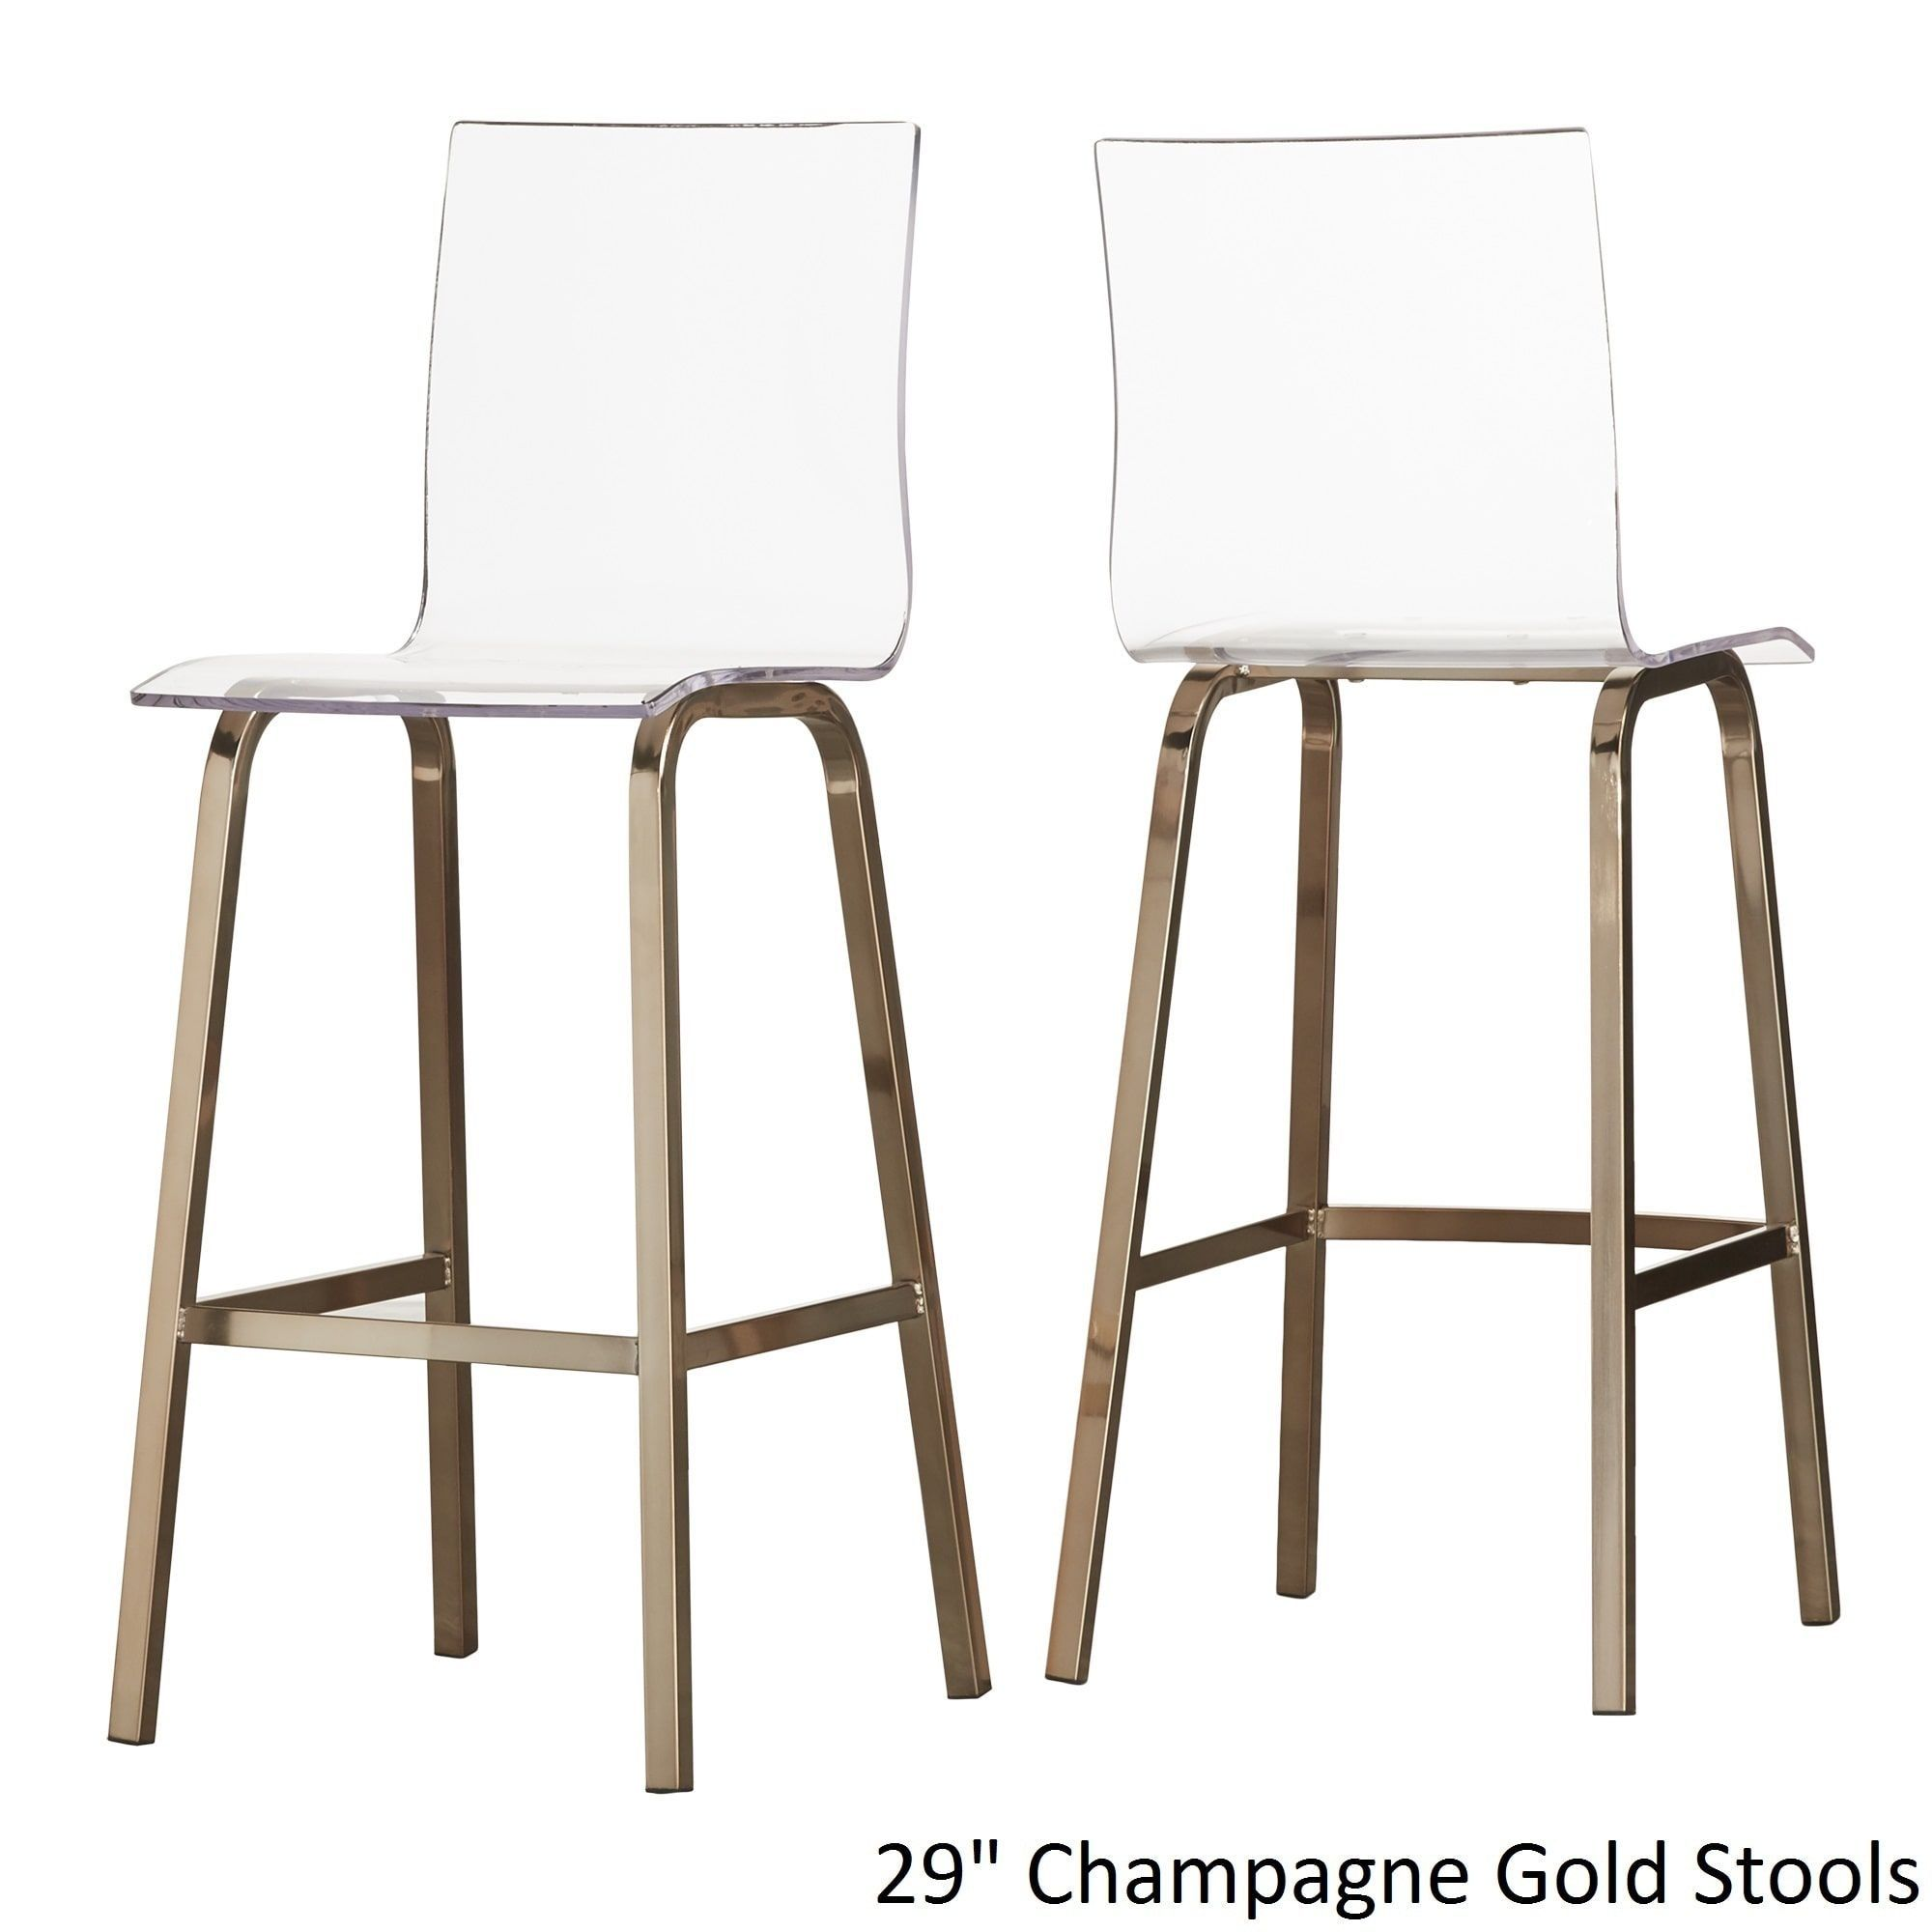 Miles Clear Acrylic Swivel High Back Bar Stools with Back by Inspire Q